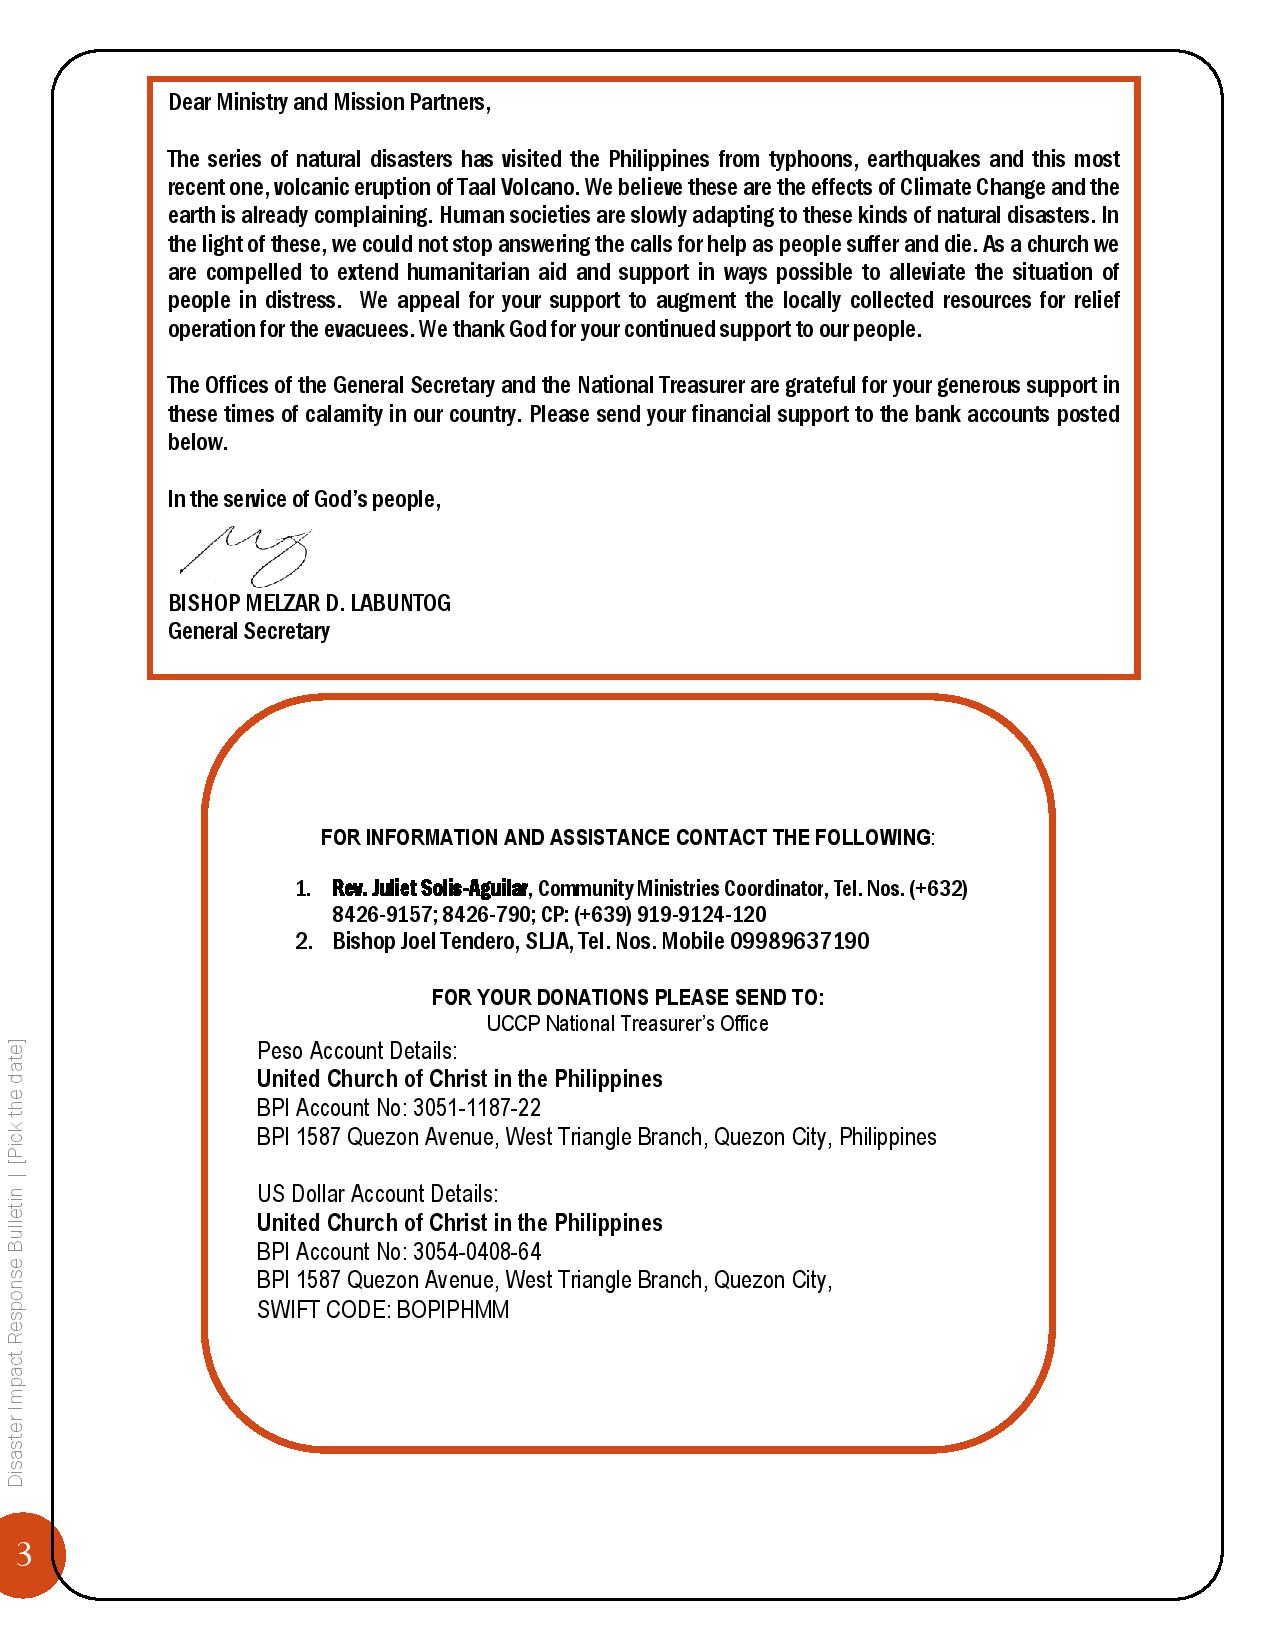 2020-Disaster-Impact-Response-Bulletin -TAAL VOLCANO ERUPTION-Edited-page-004